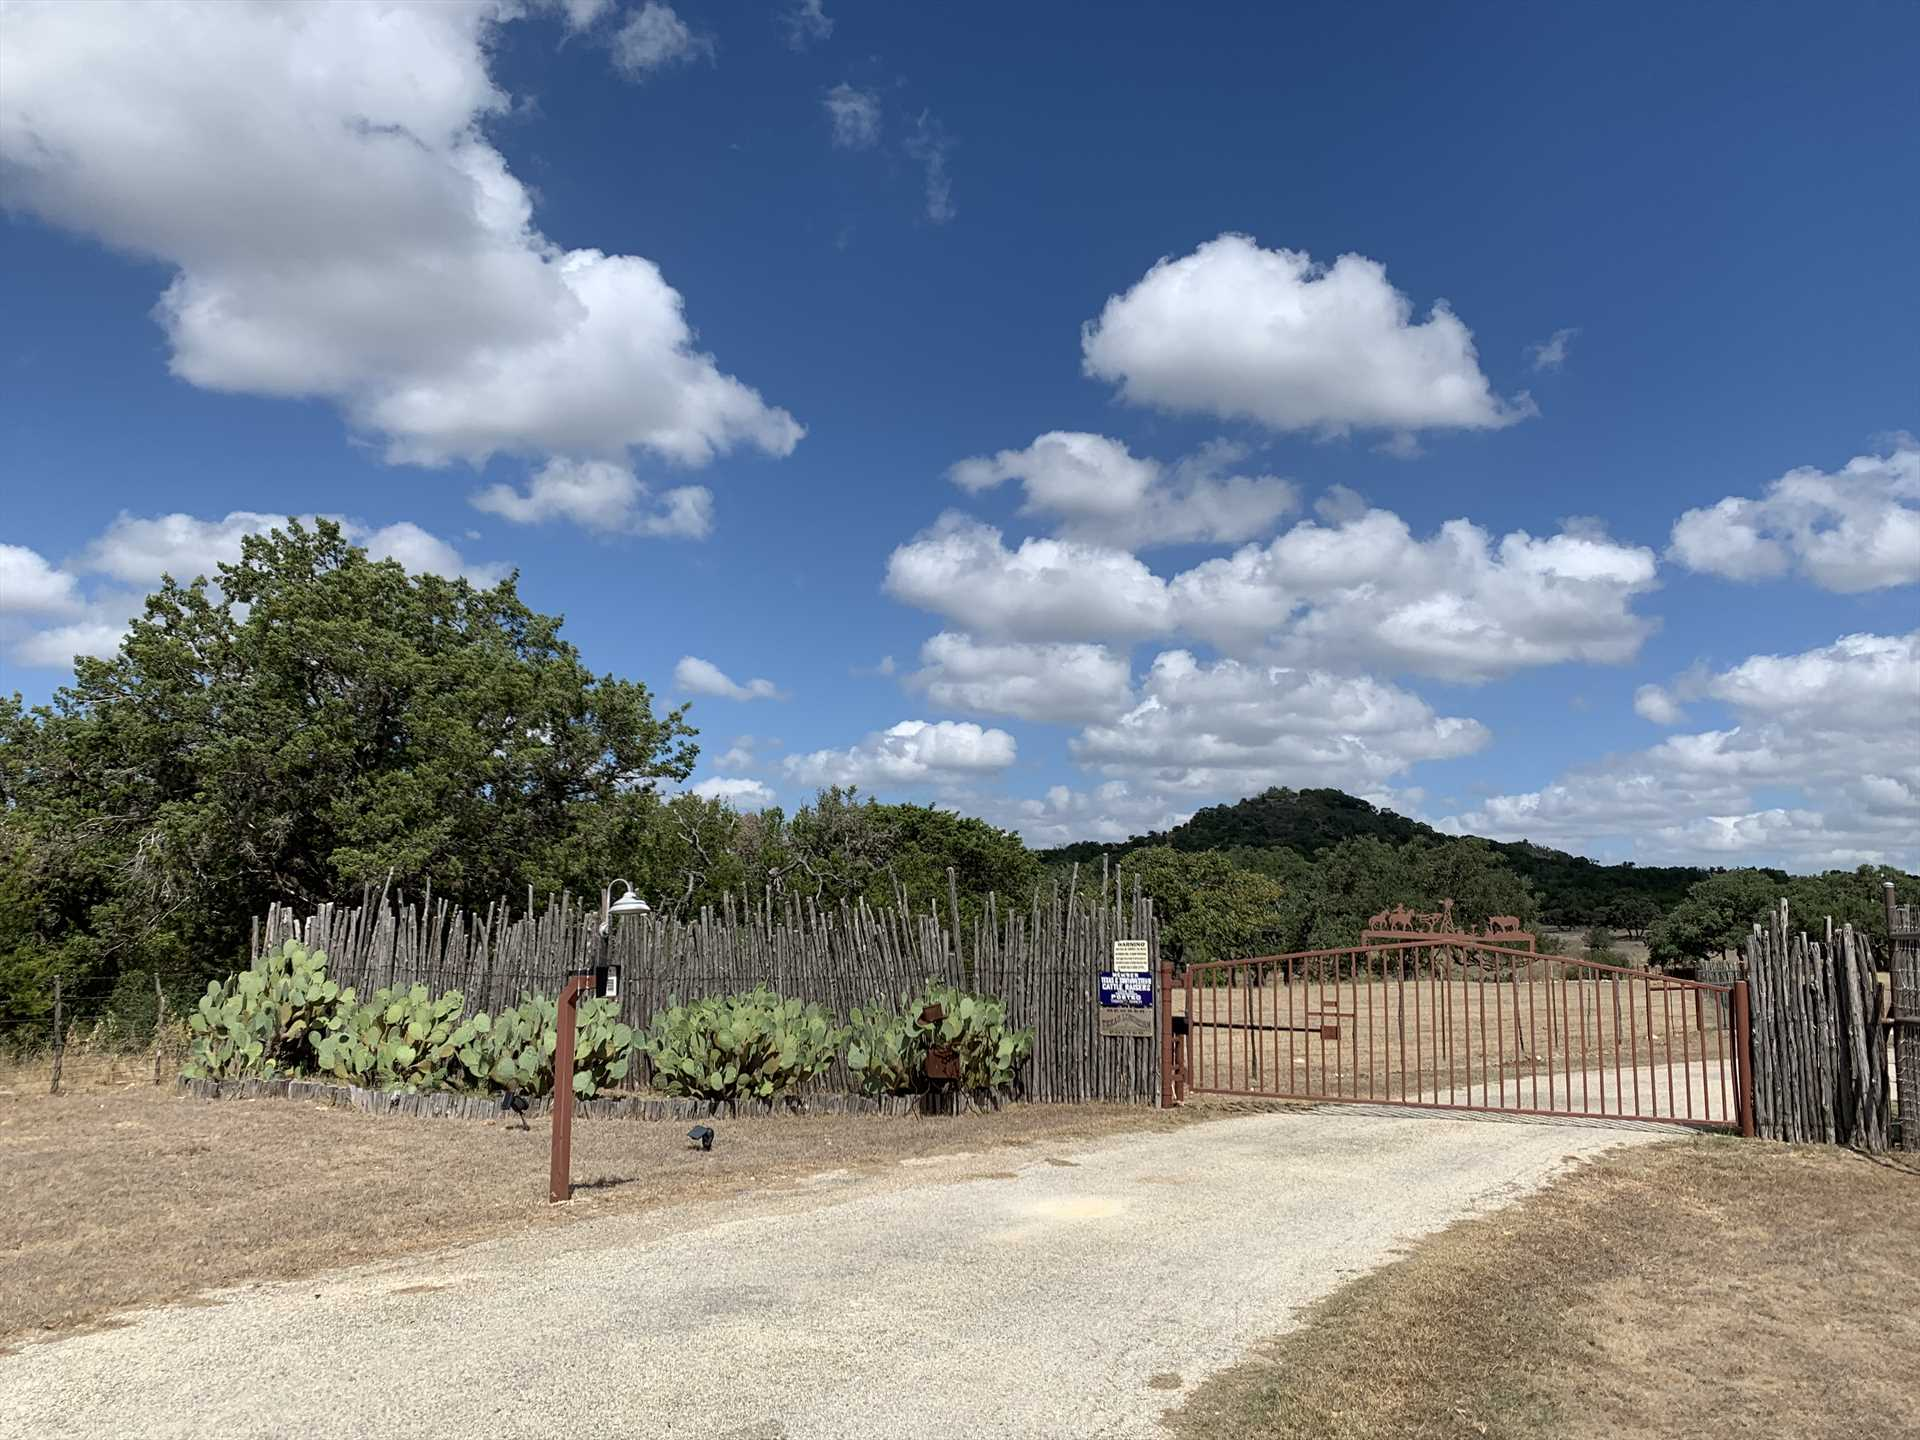 Tabasco Ranch is close to quaint Hill Country towns and many of ifs famous wineries. Make it a point to explore!